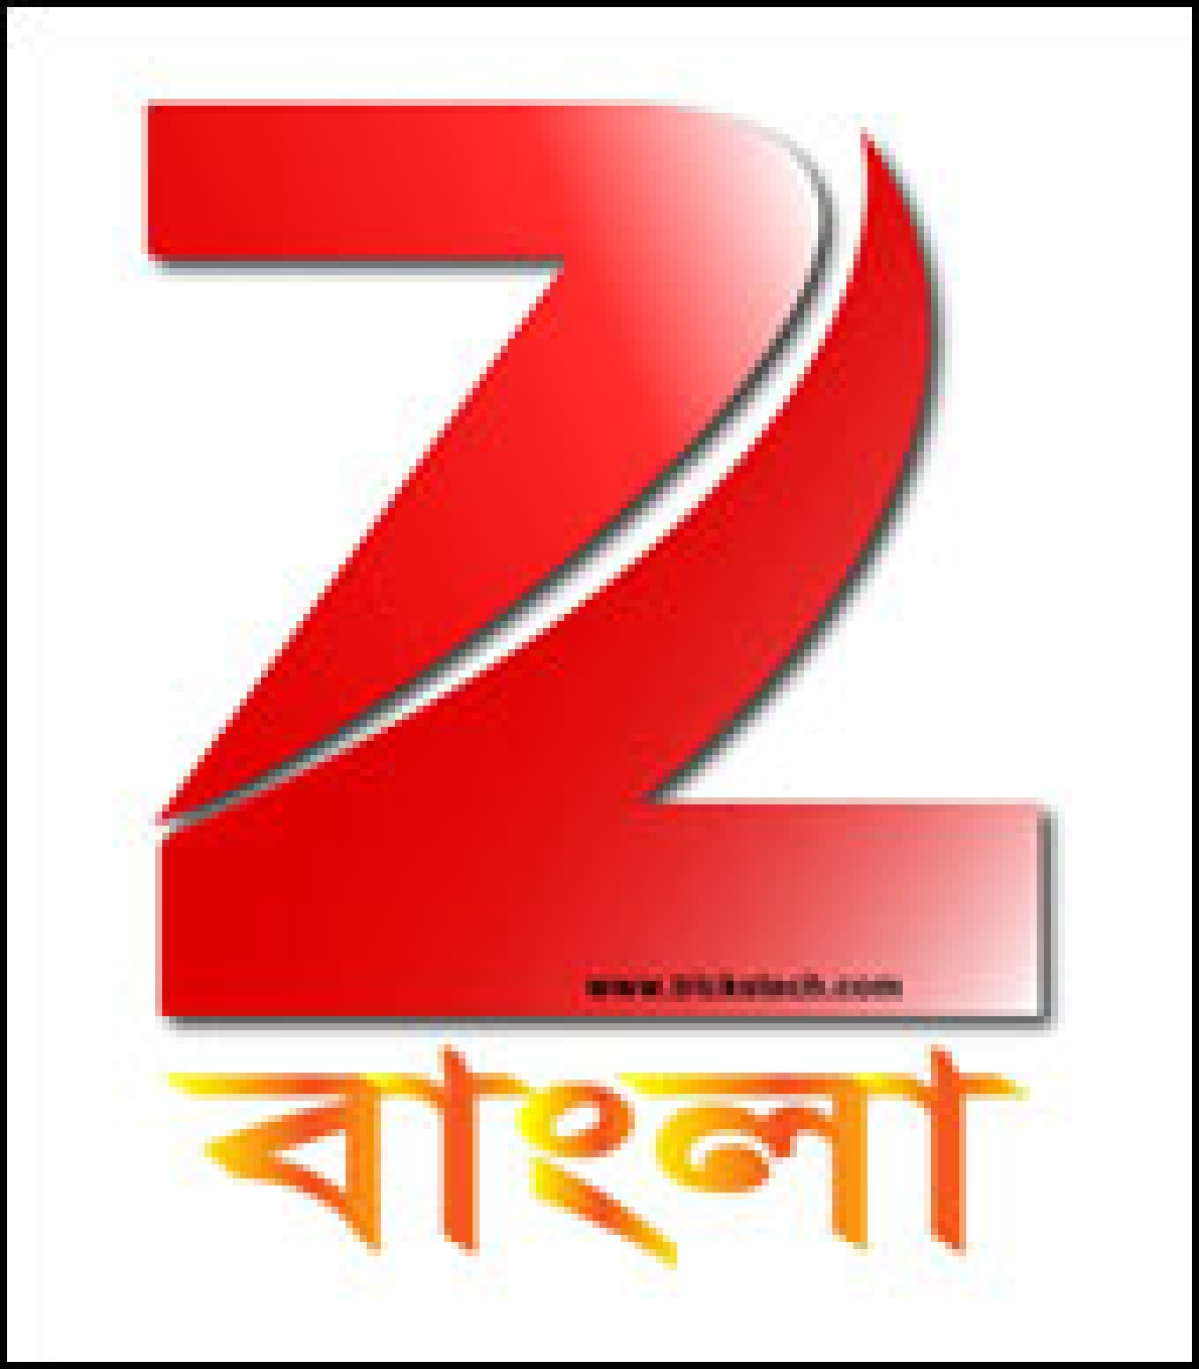 Star and Zee biggest gainers in Bengali GEC market, too